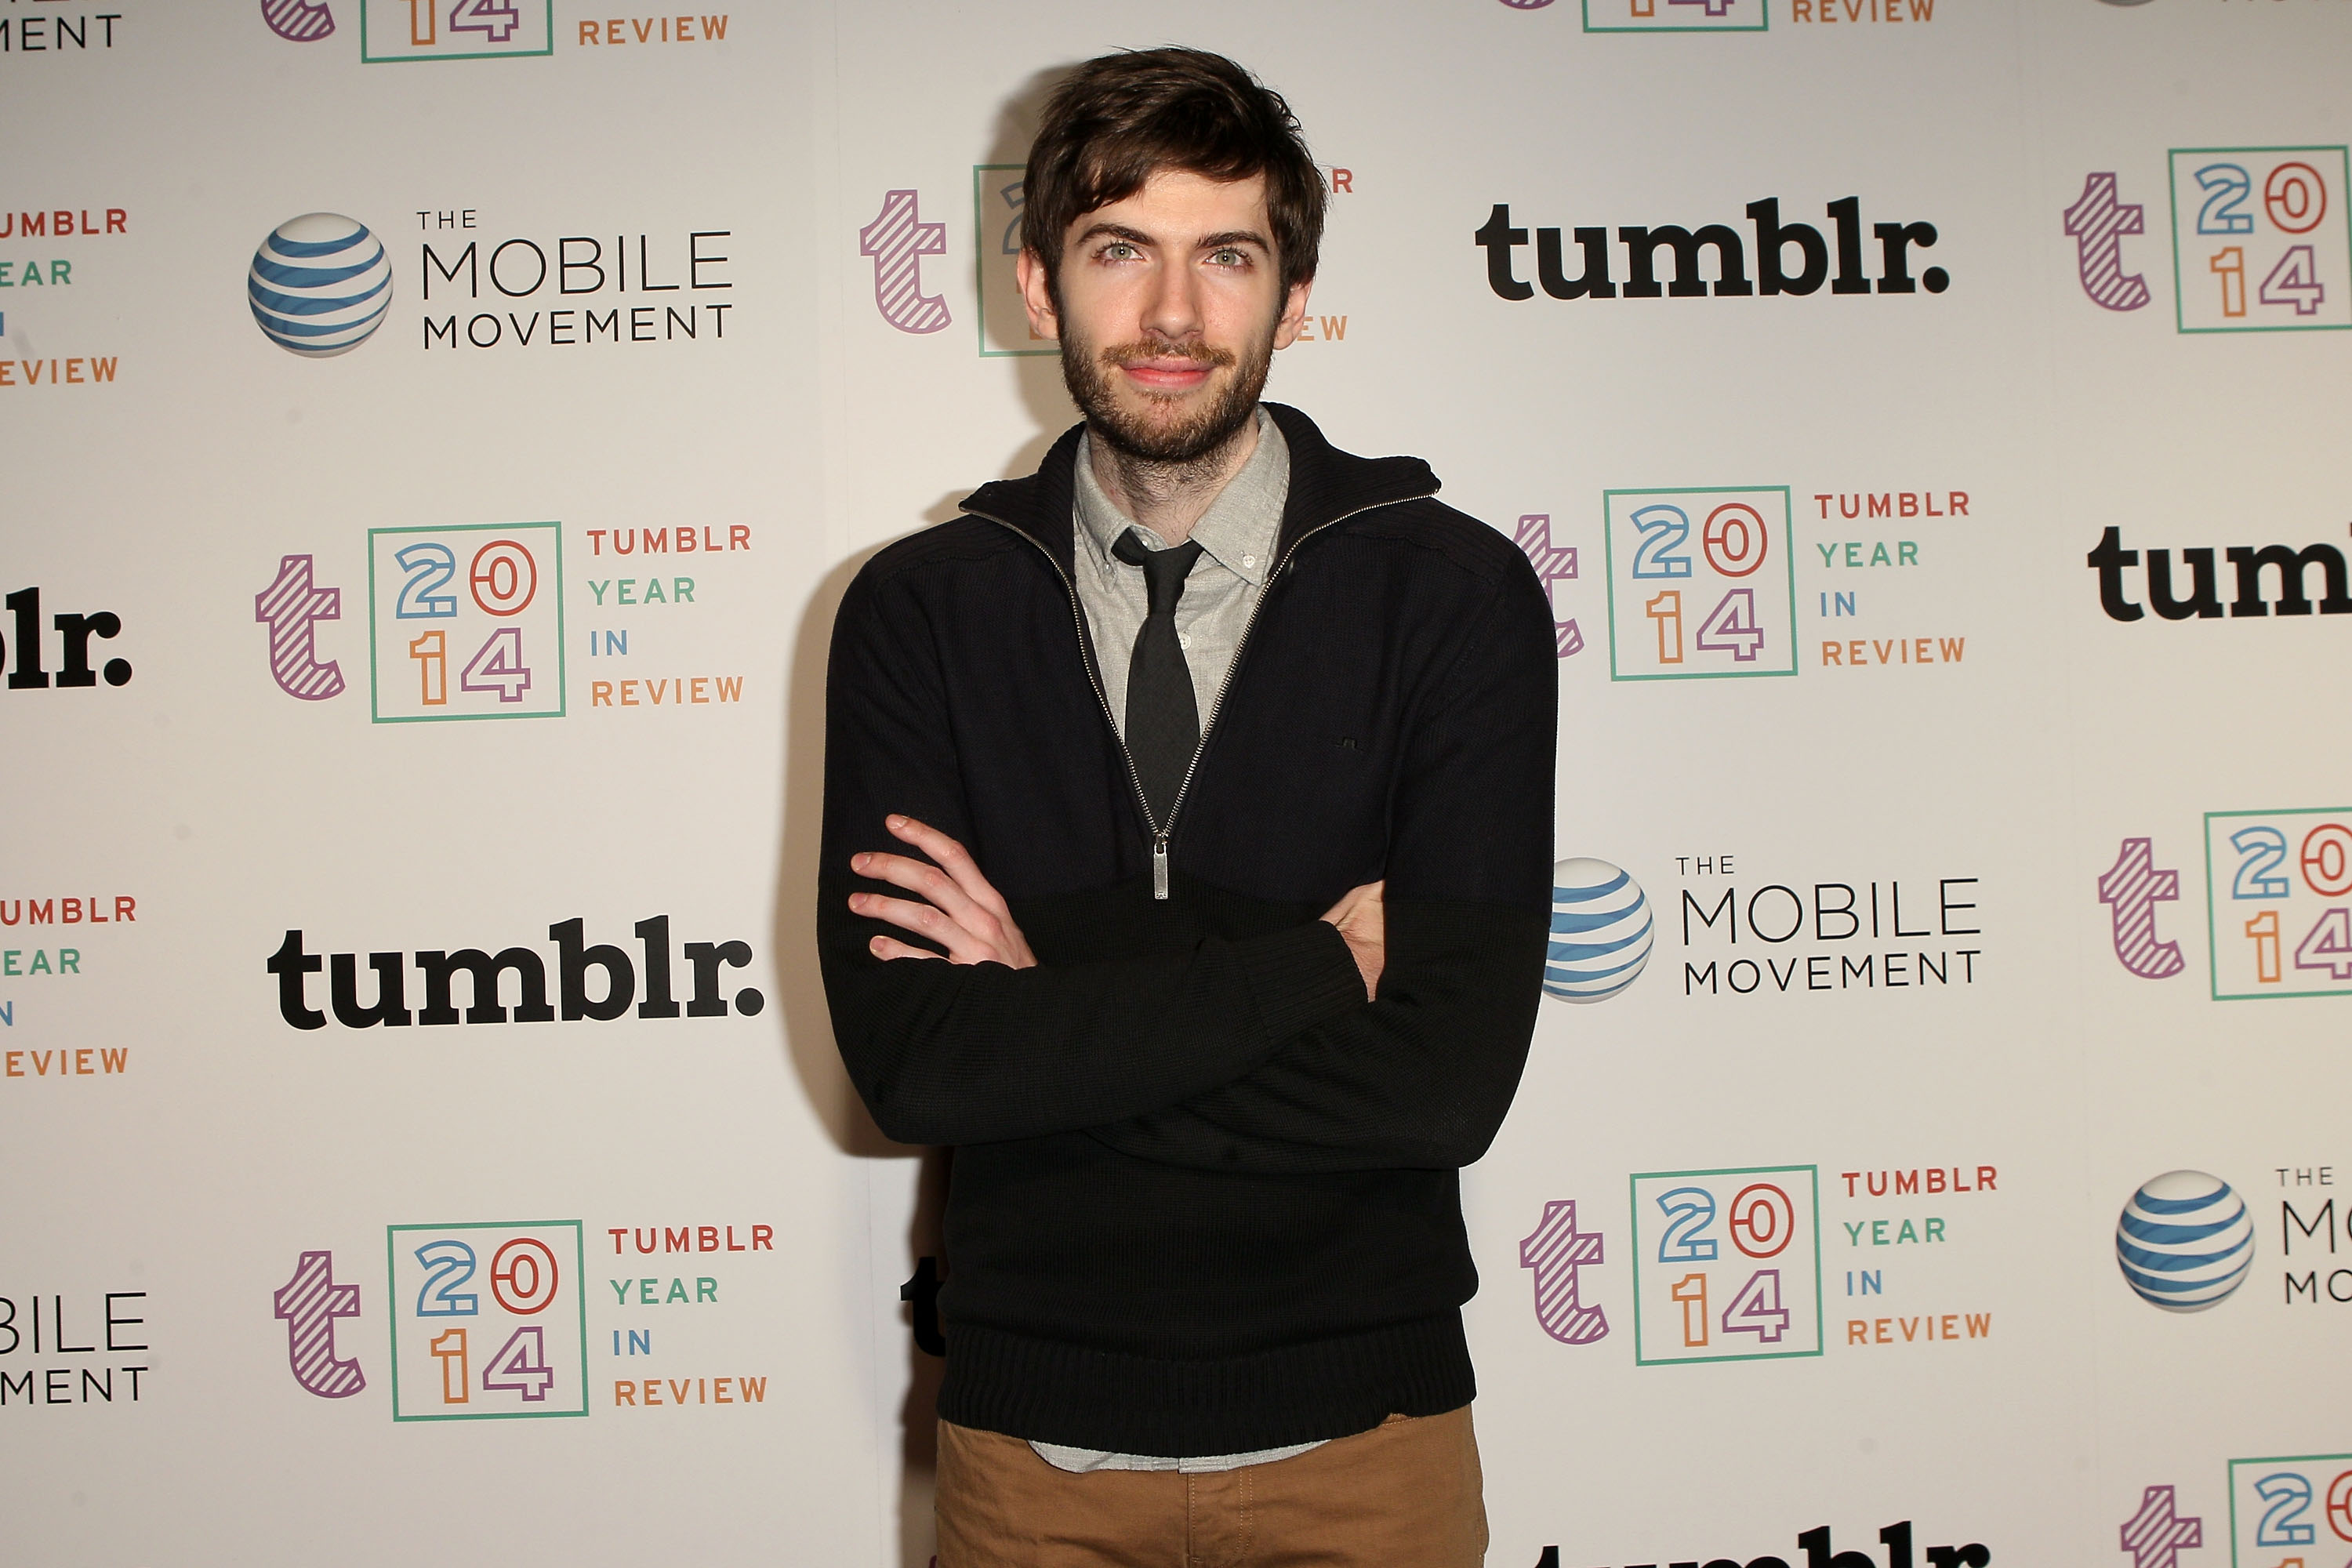 Tumblr's 2014 Year In Review Party